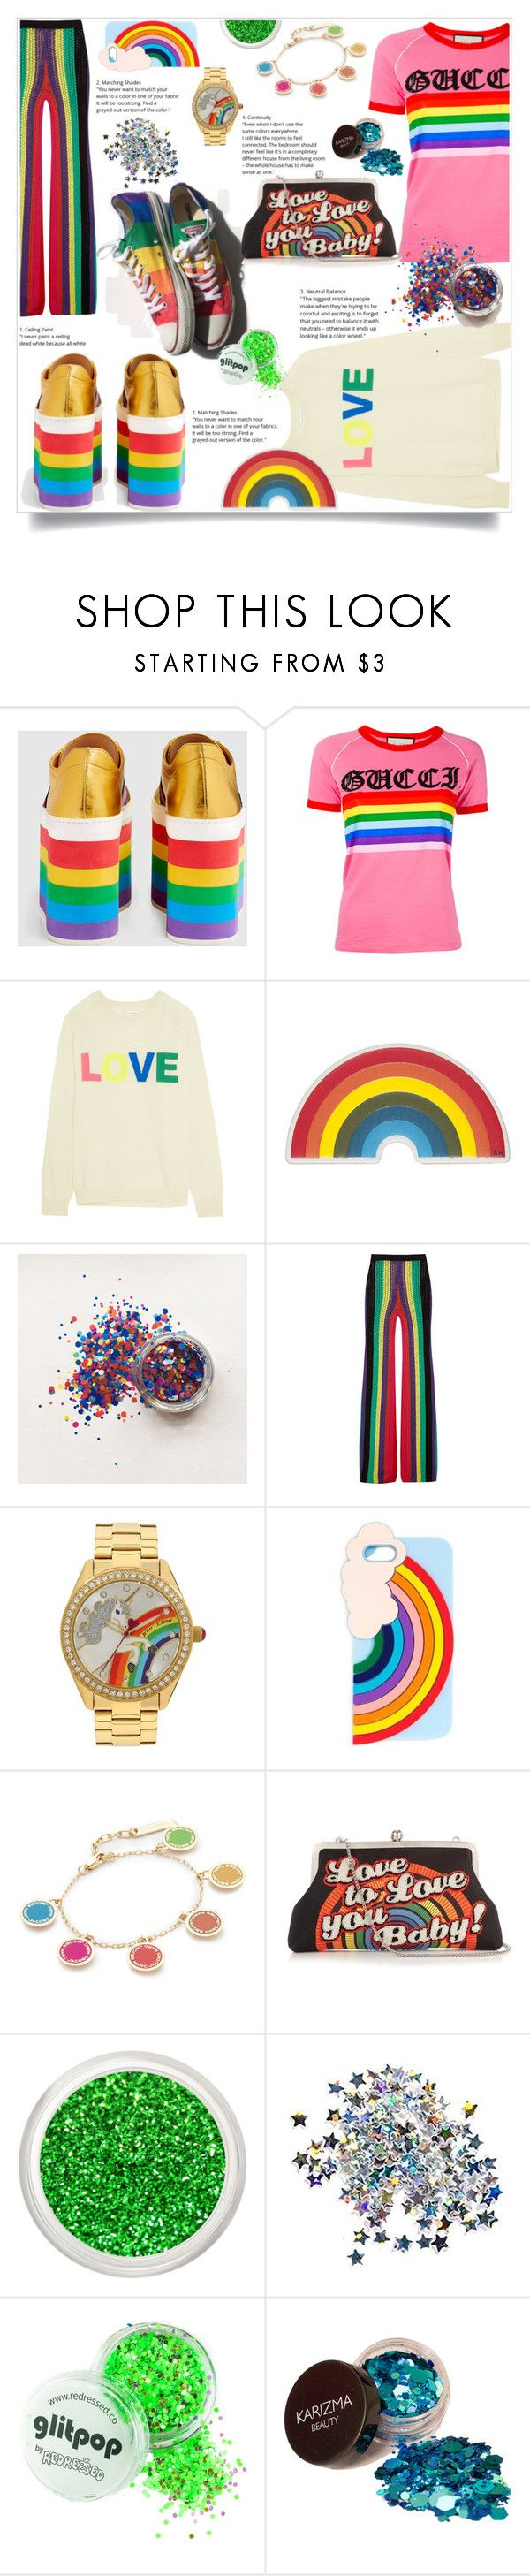 """Love is love is love ❤️"" by xmoonagedaydreamx ❤ liked on Polyvore featuring Gucci, Chinti and Parker, Anya Hindmarch, Balmain, Betsey Johnson, Miss Selfridge, Marc Jacobs, Sarah's Bag, love and pride"